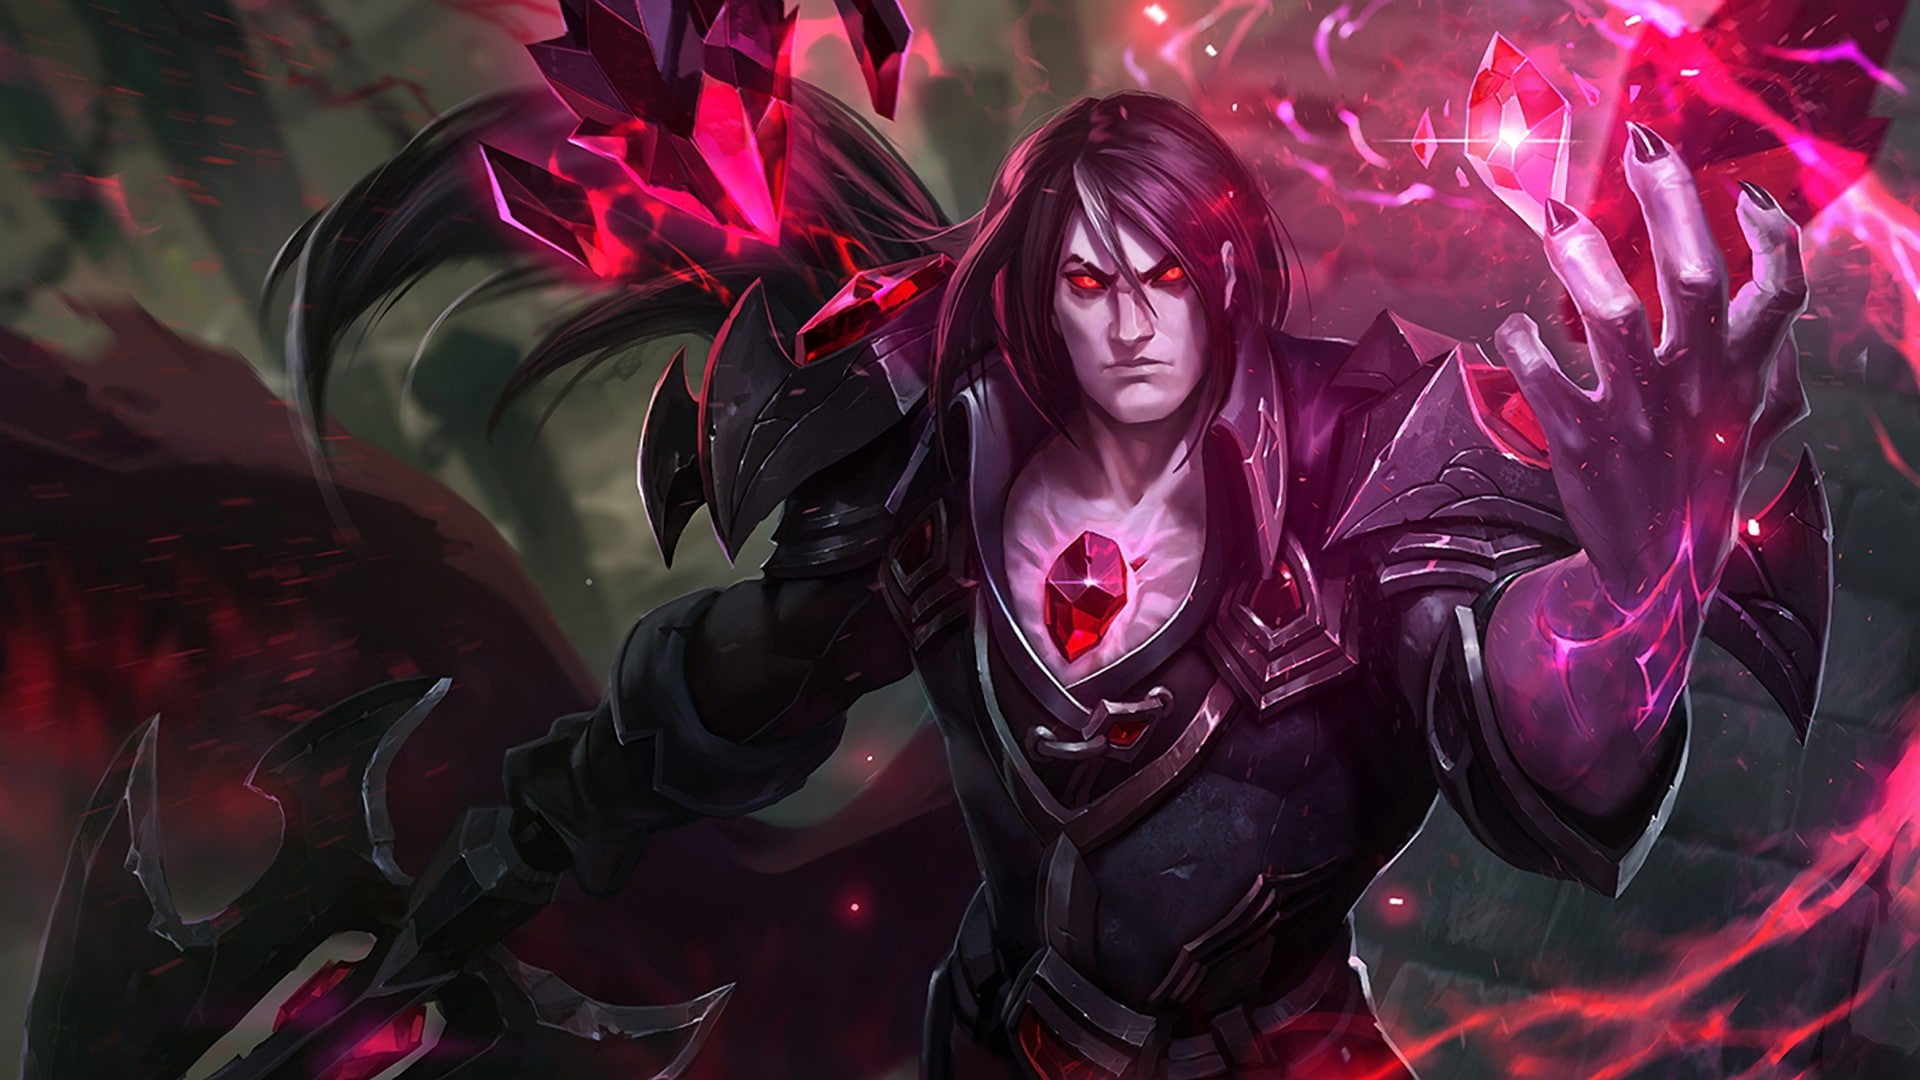 HD wallpaper League Of Legends Taric Wallpaper Flare 1920x1080